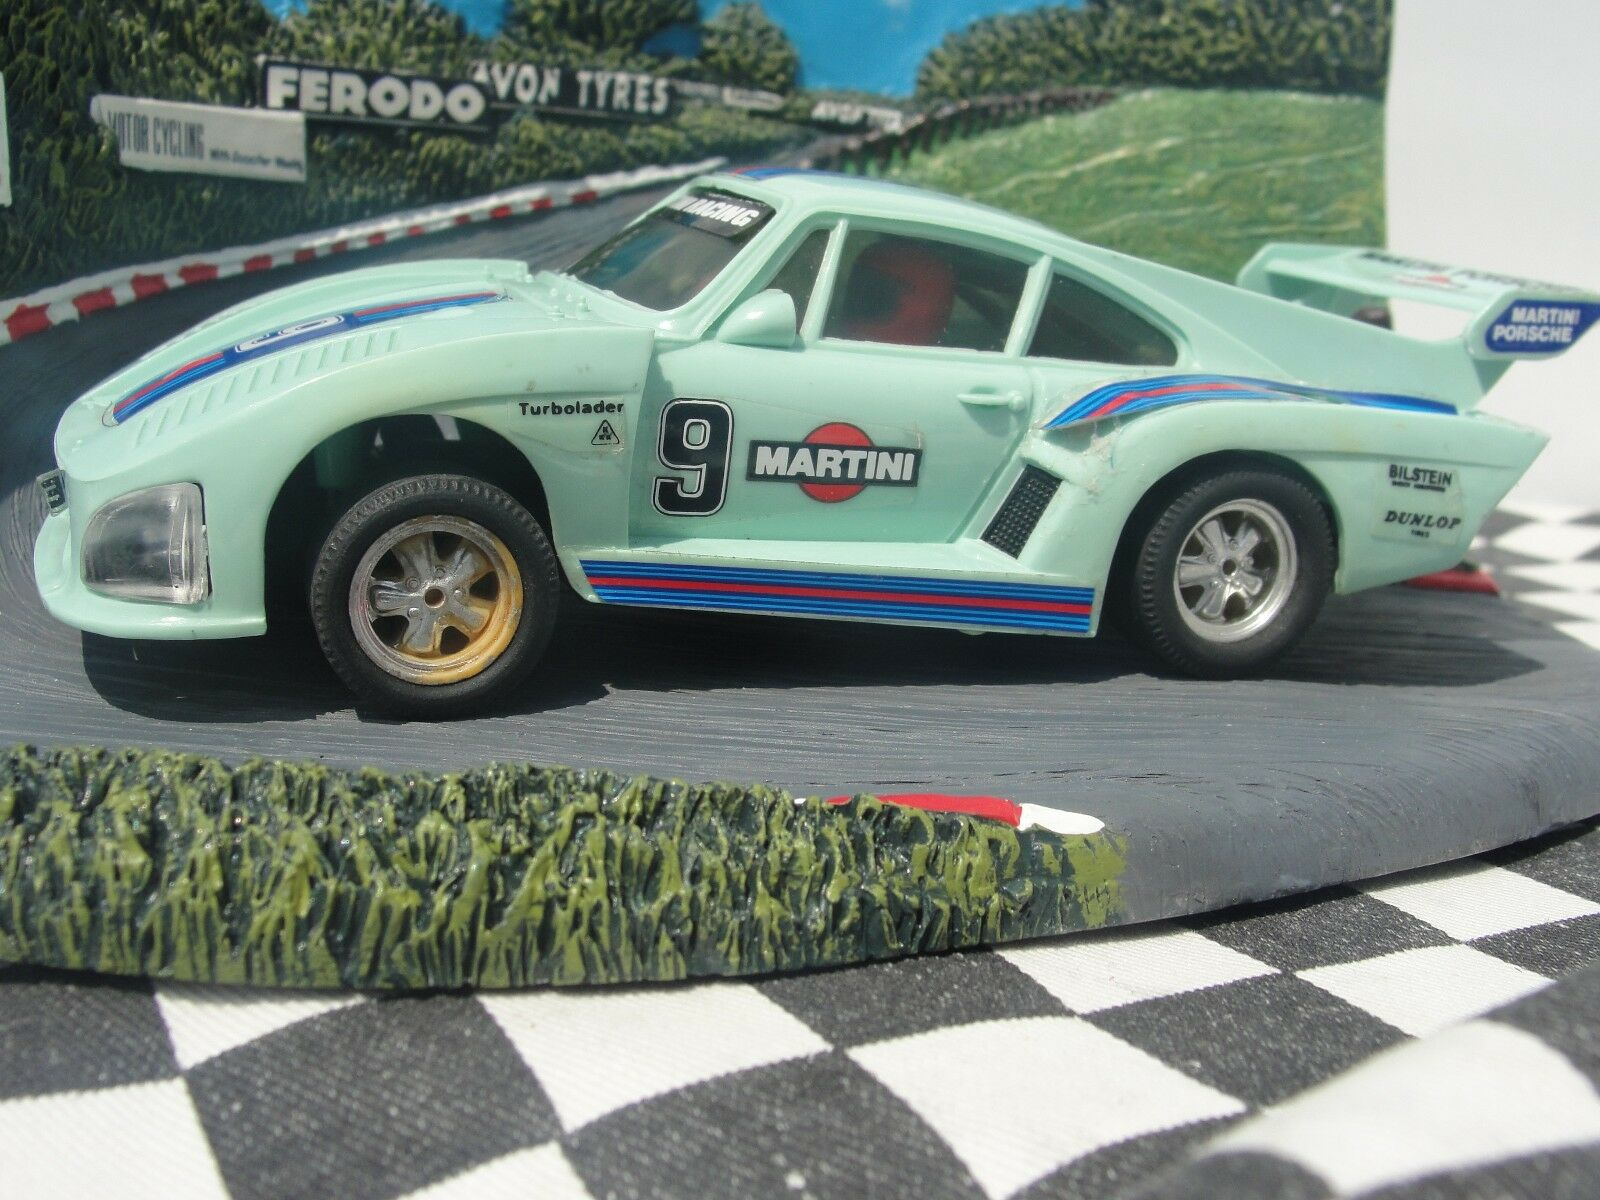 SCALEXTRIC SPANISH PORSCHE 935 MINT GREEN  71 1 32 SLOT NEAR MINT UNBOXED